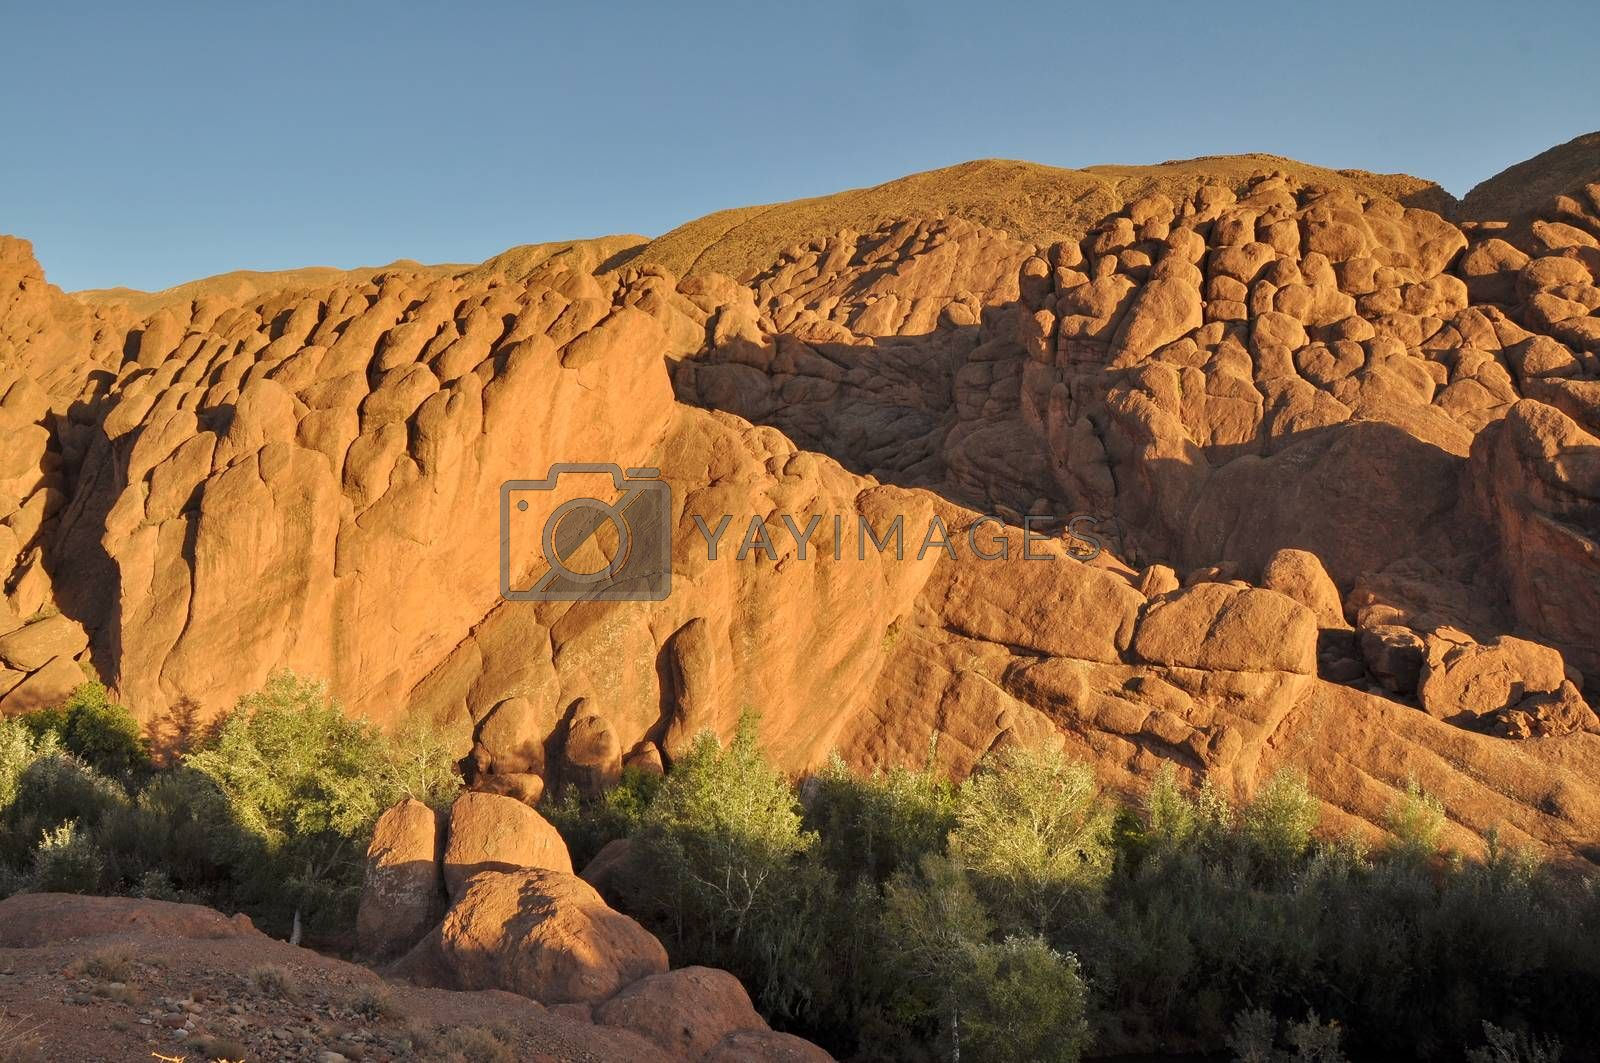 Royalty free image of Strange rock formations in Dades Gorge, Morocco, Africa by anderm